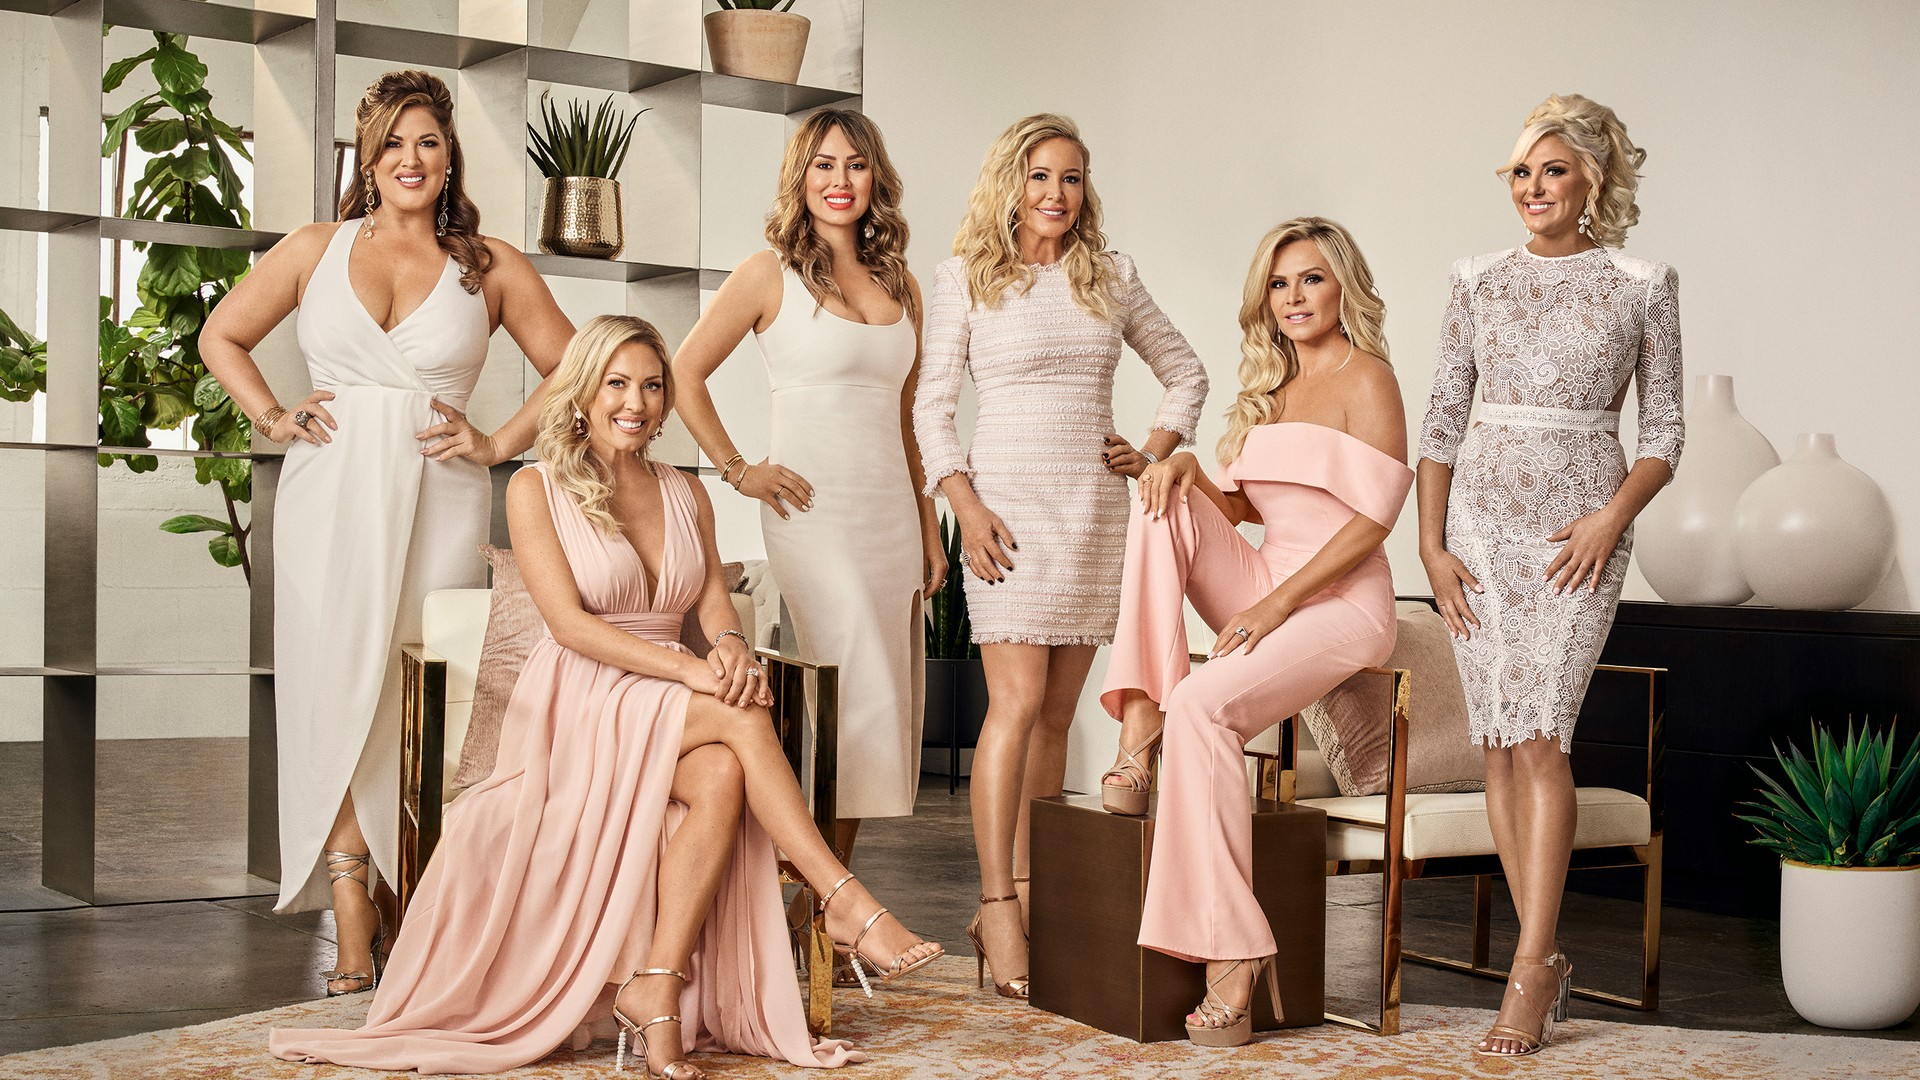 The real housewives of new york city get naked photos